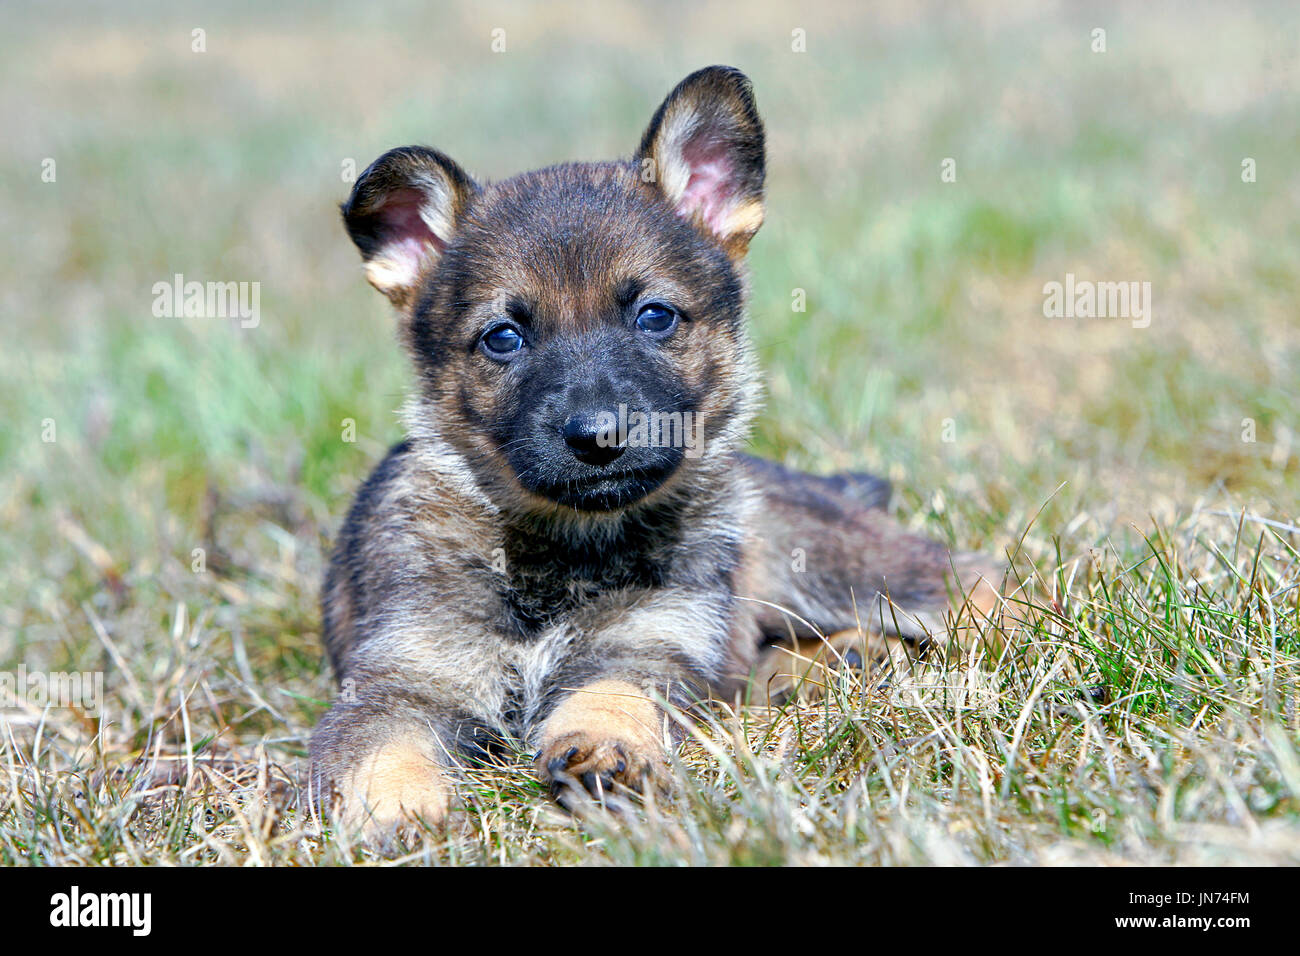 German Shepherd Puppy five weeks old, laying on grass - Stock Image